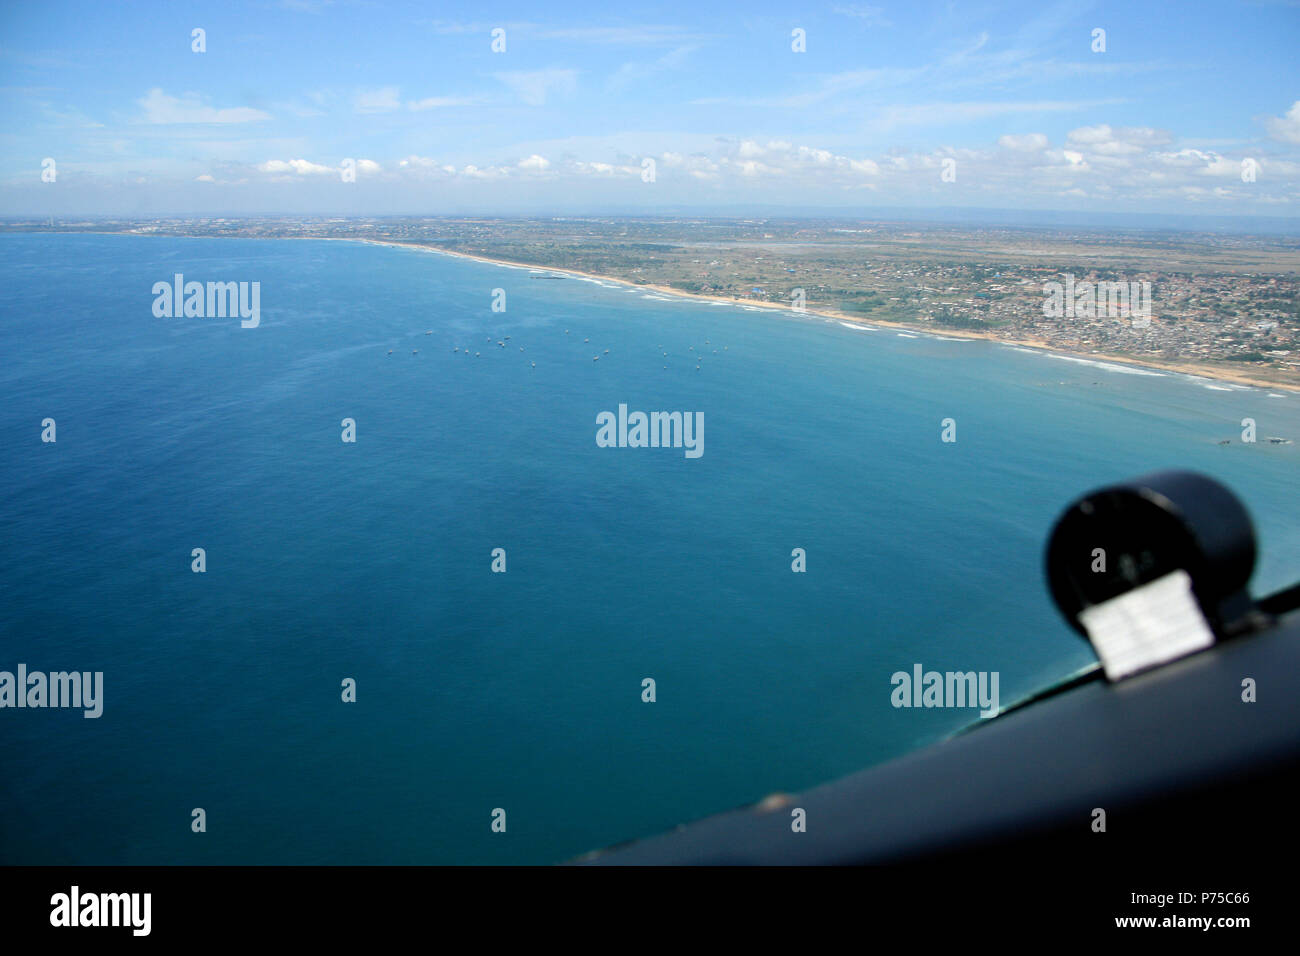 Fishing Boats off the Shore of Ghana, as seen from the cockpit of an airplane - Stock Image